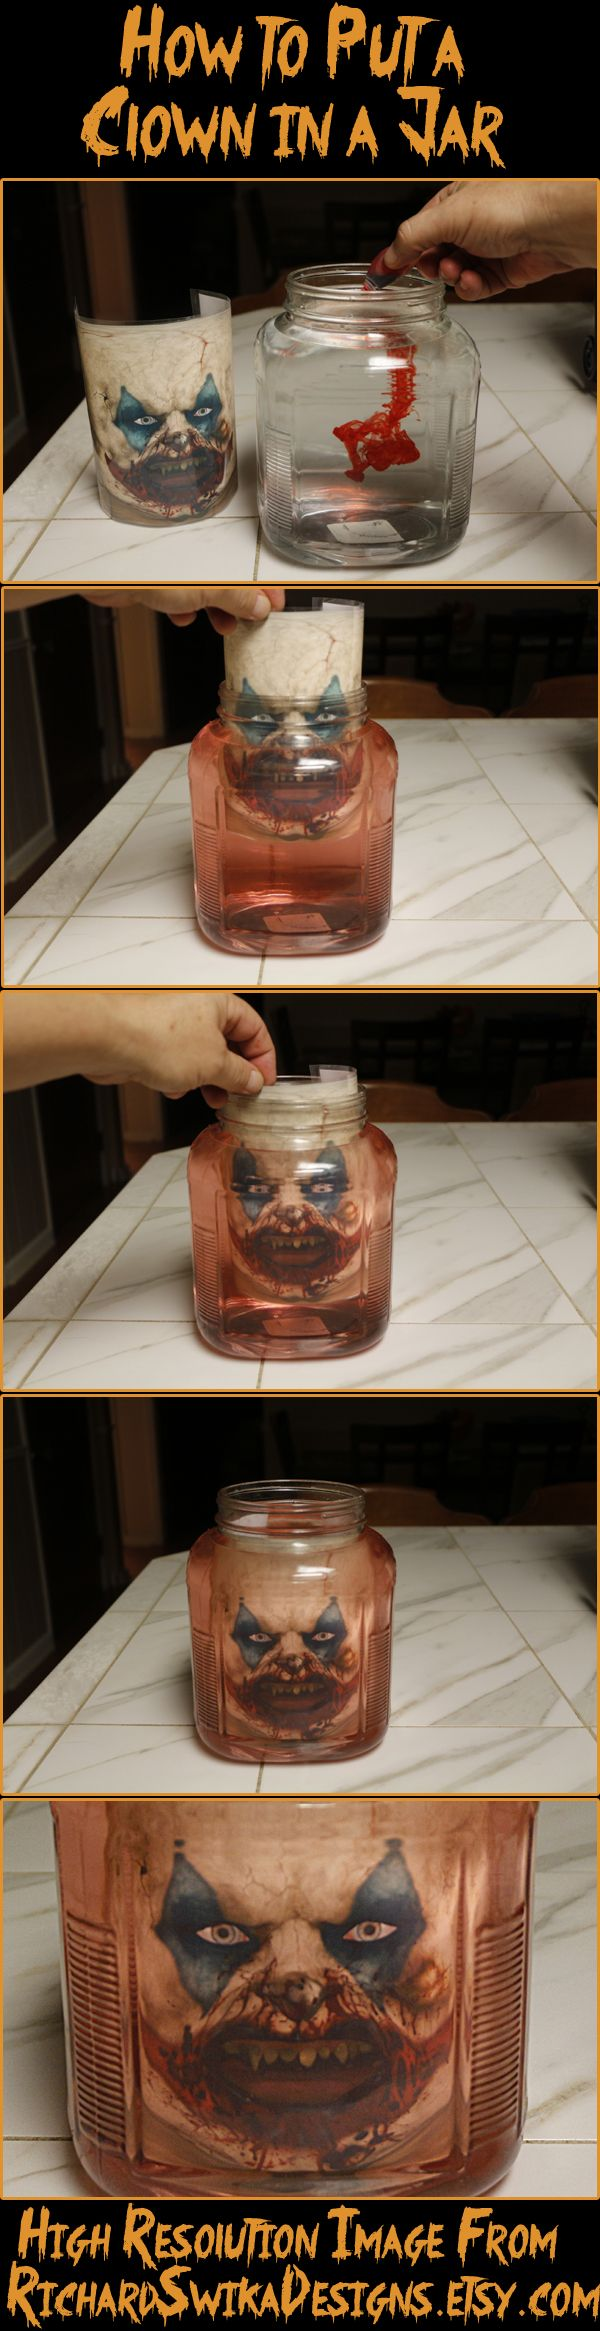 How to put a Clown in a Jar, Clown Goblin Head in a Jar Head Halloween Prank, Head in a Bottle Sideshow Trick, Digital Download, Haunted House Illusion, It Evil Clown.  I will make any custom character upon request.